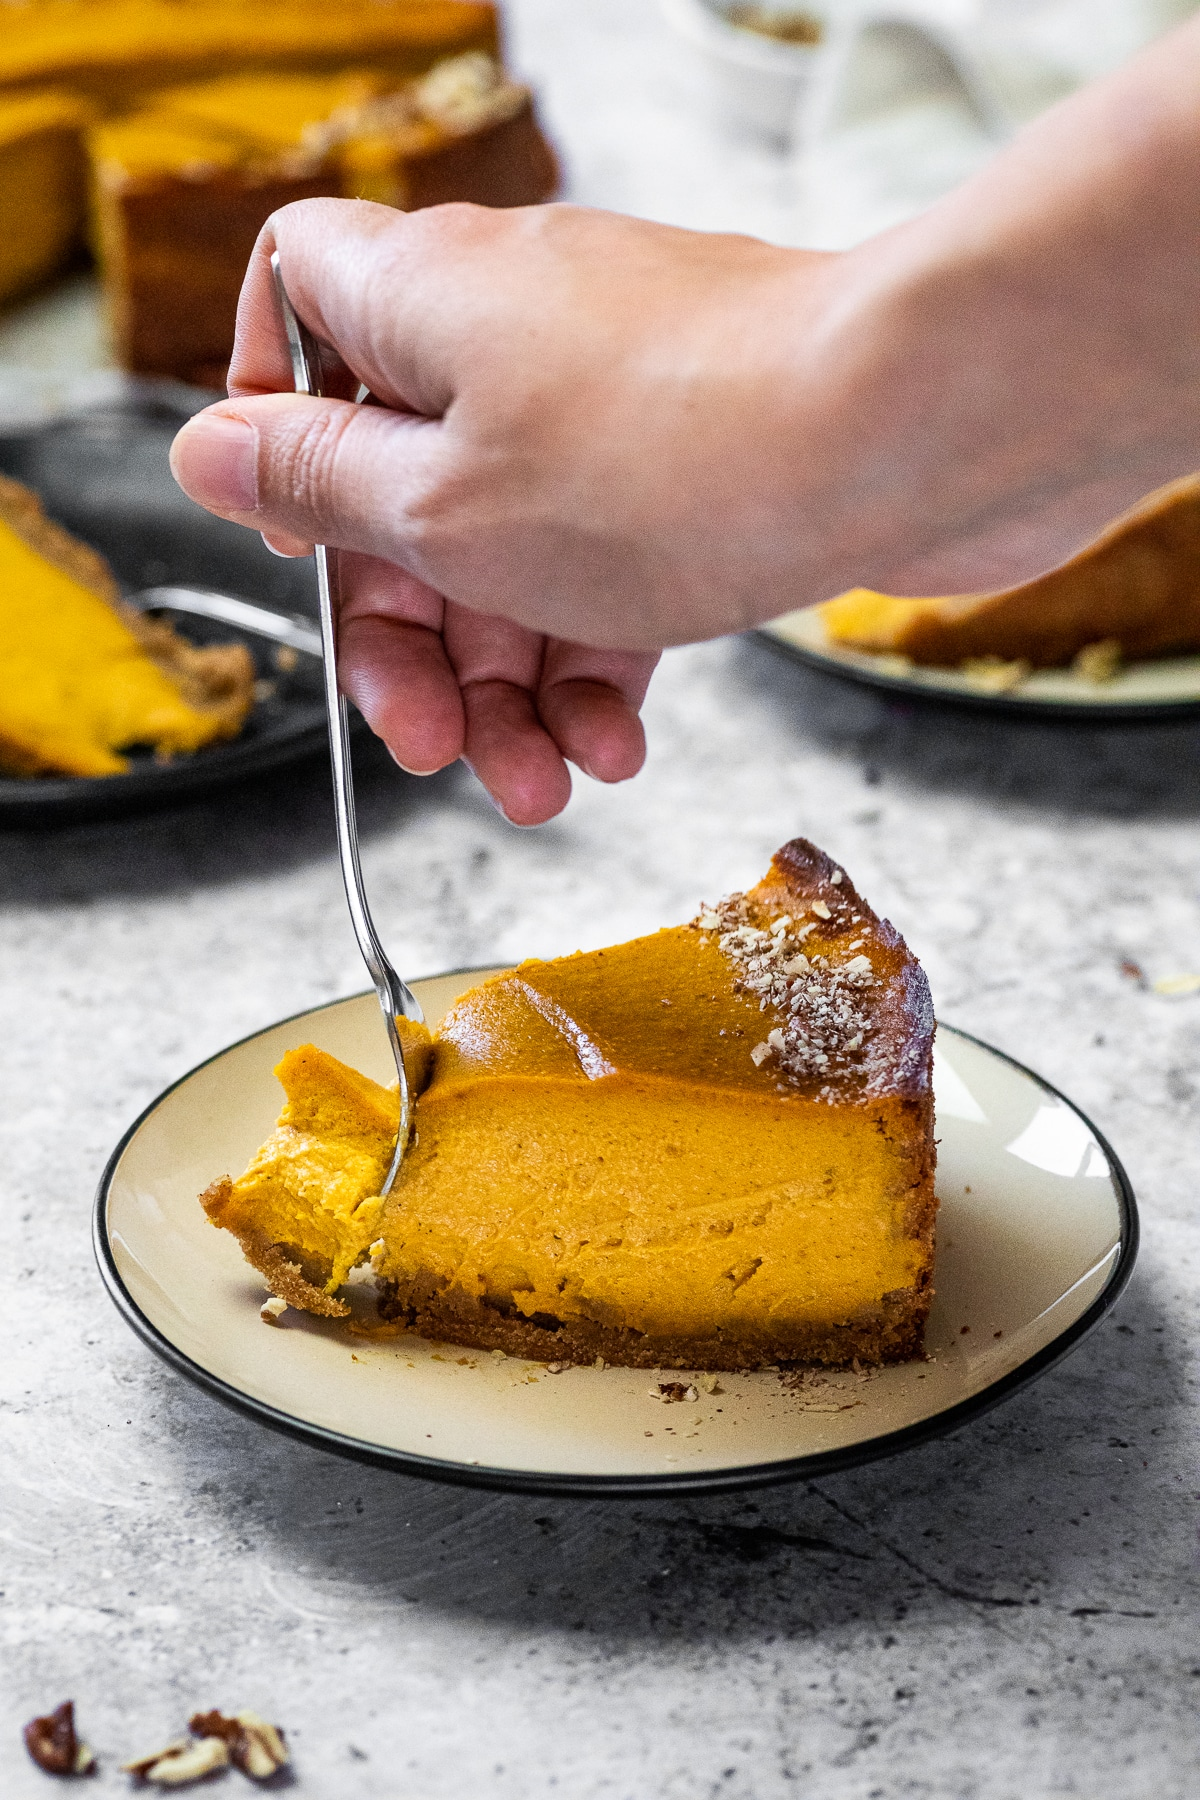 Taking some pumpkin cheesecake with a fork from a piece on a plate.